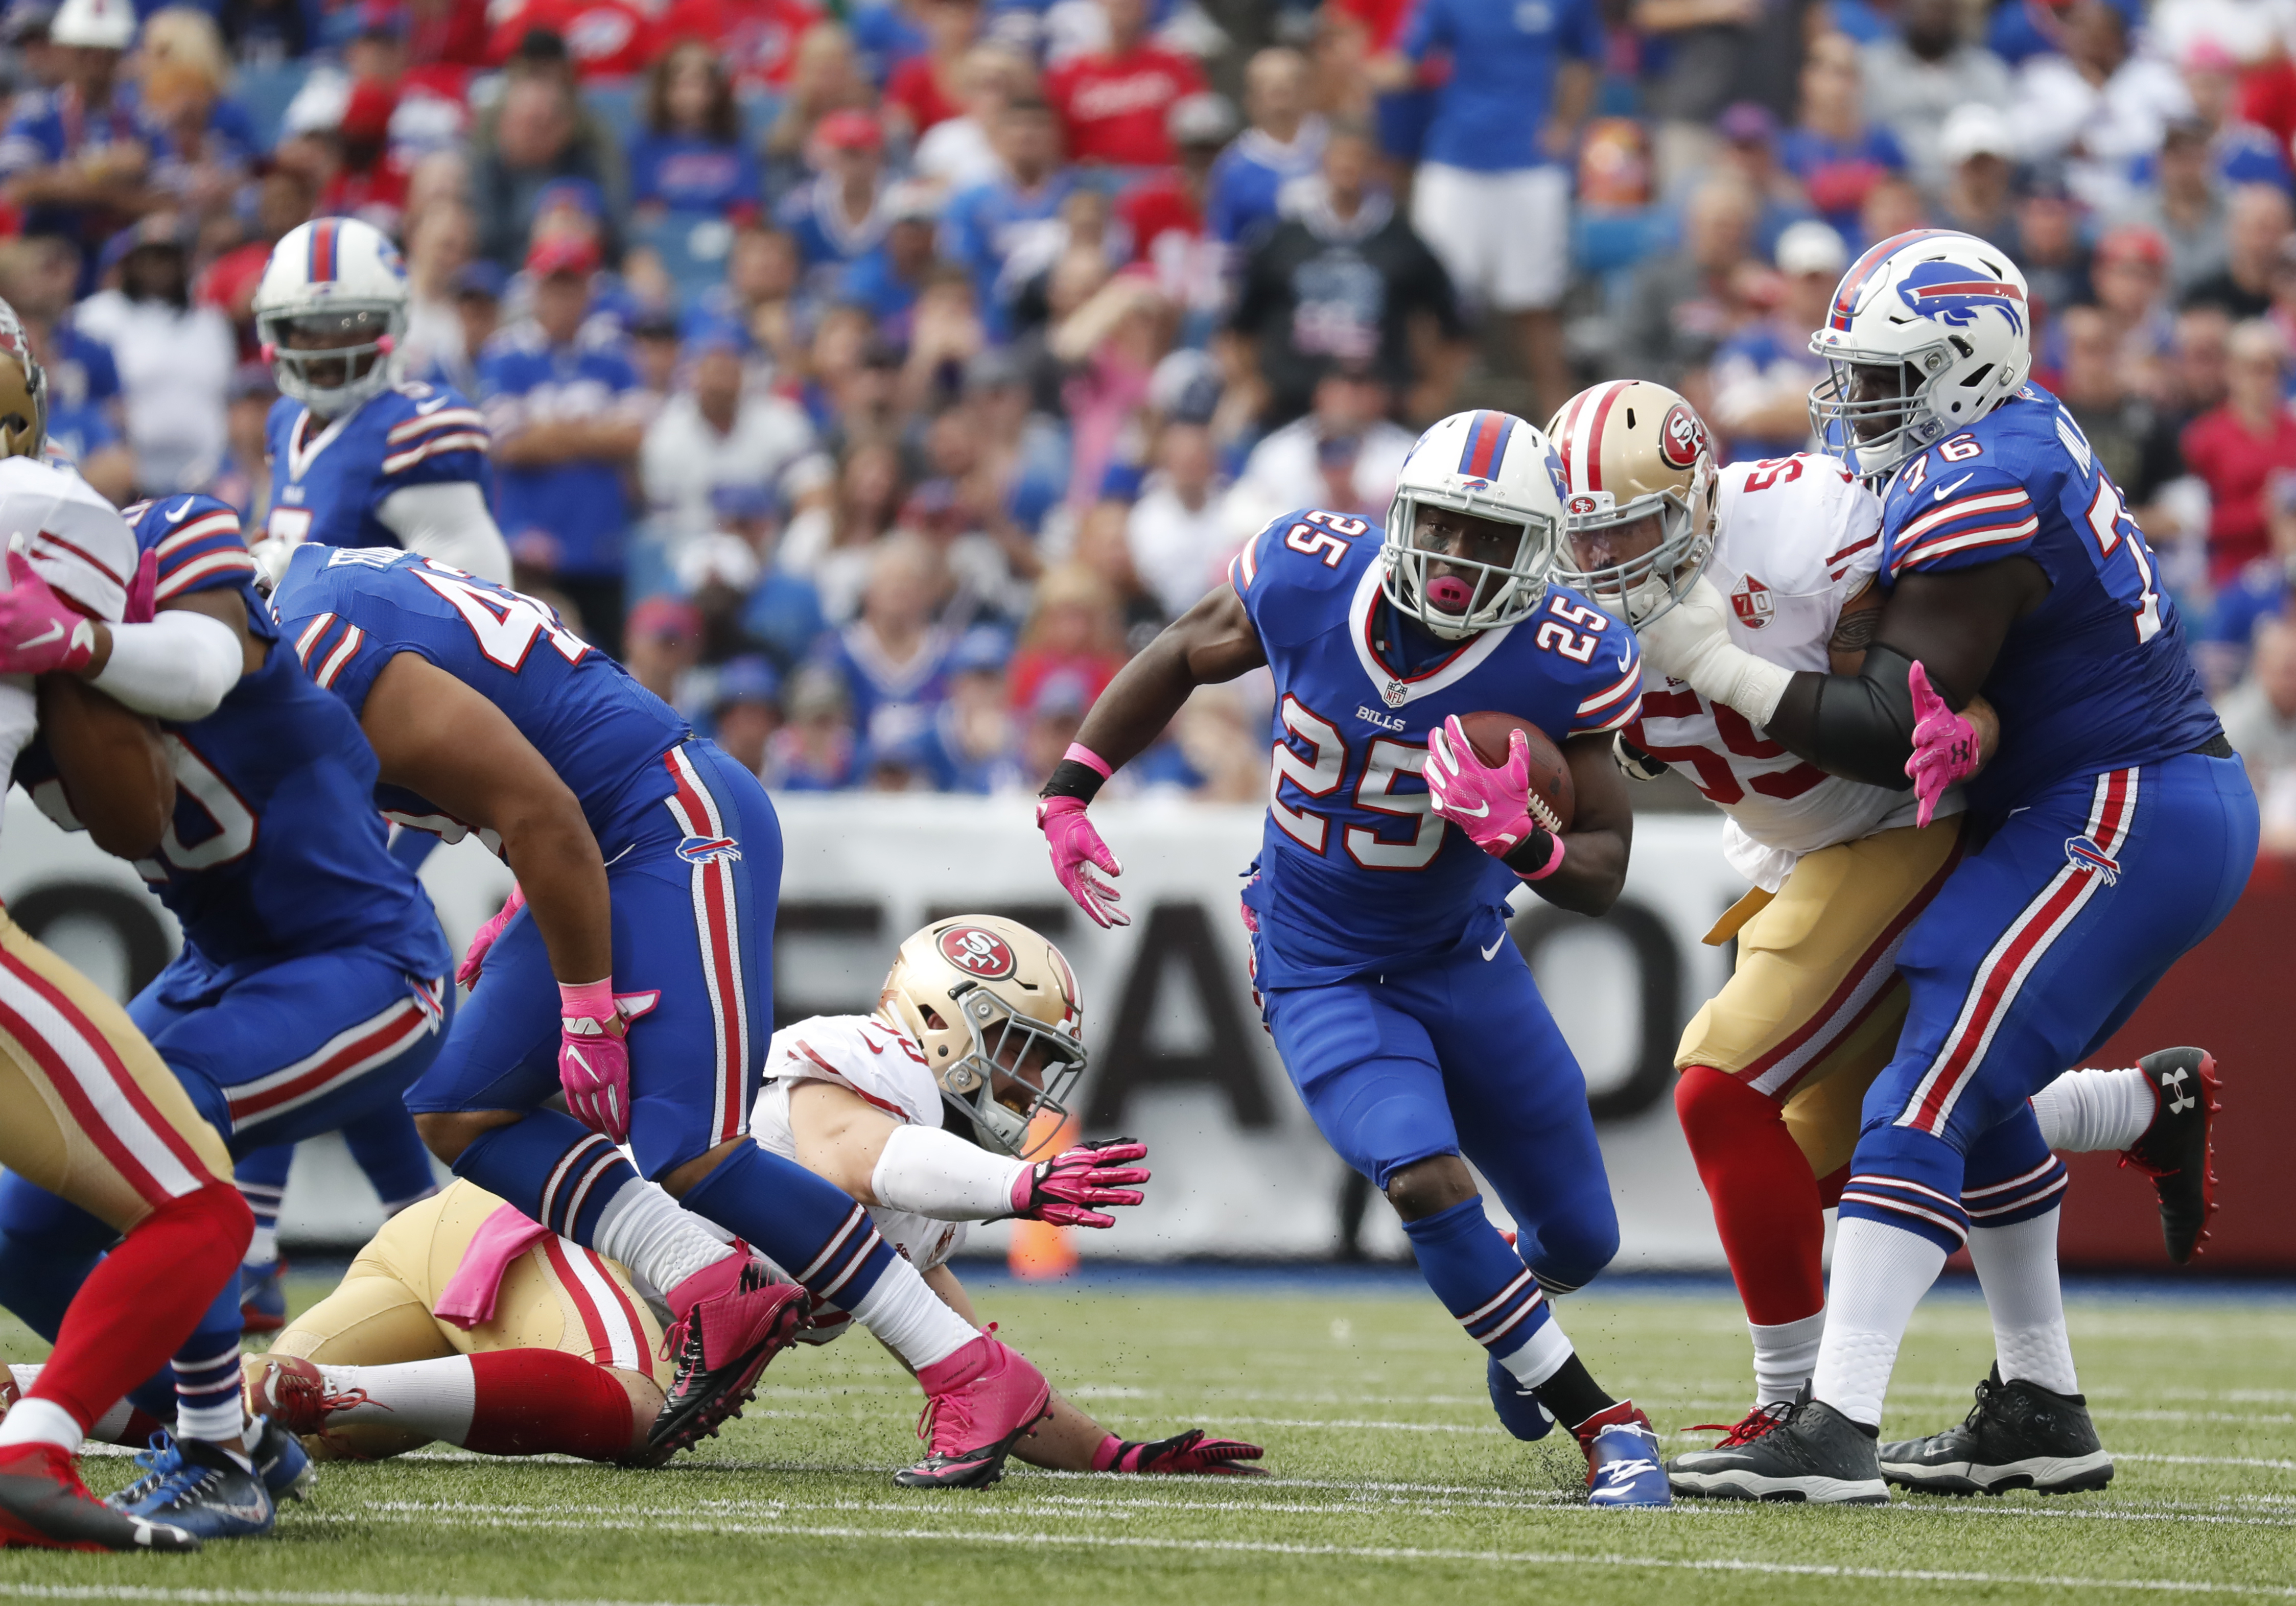 Buffalo Bills running back LeSean McCoy (25) finds a hole against the San Francisco 49ers during the first quarter at New Era Field on Oct. 16.(Harry Scull Jr./Buffalo News)